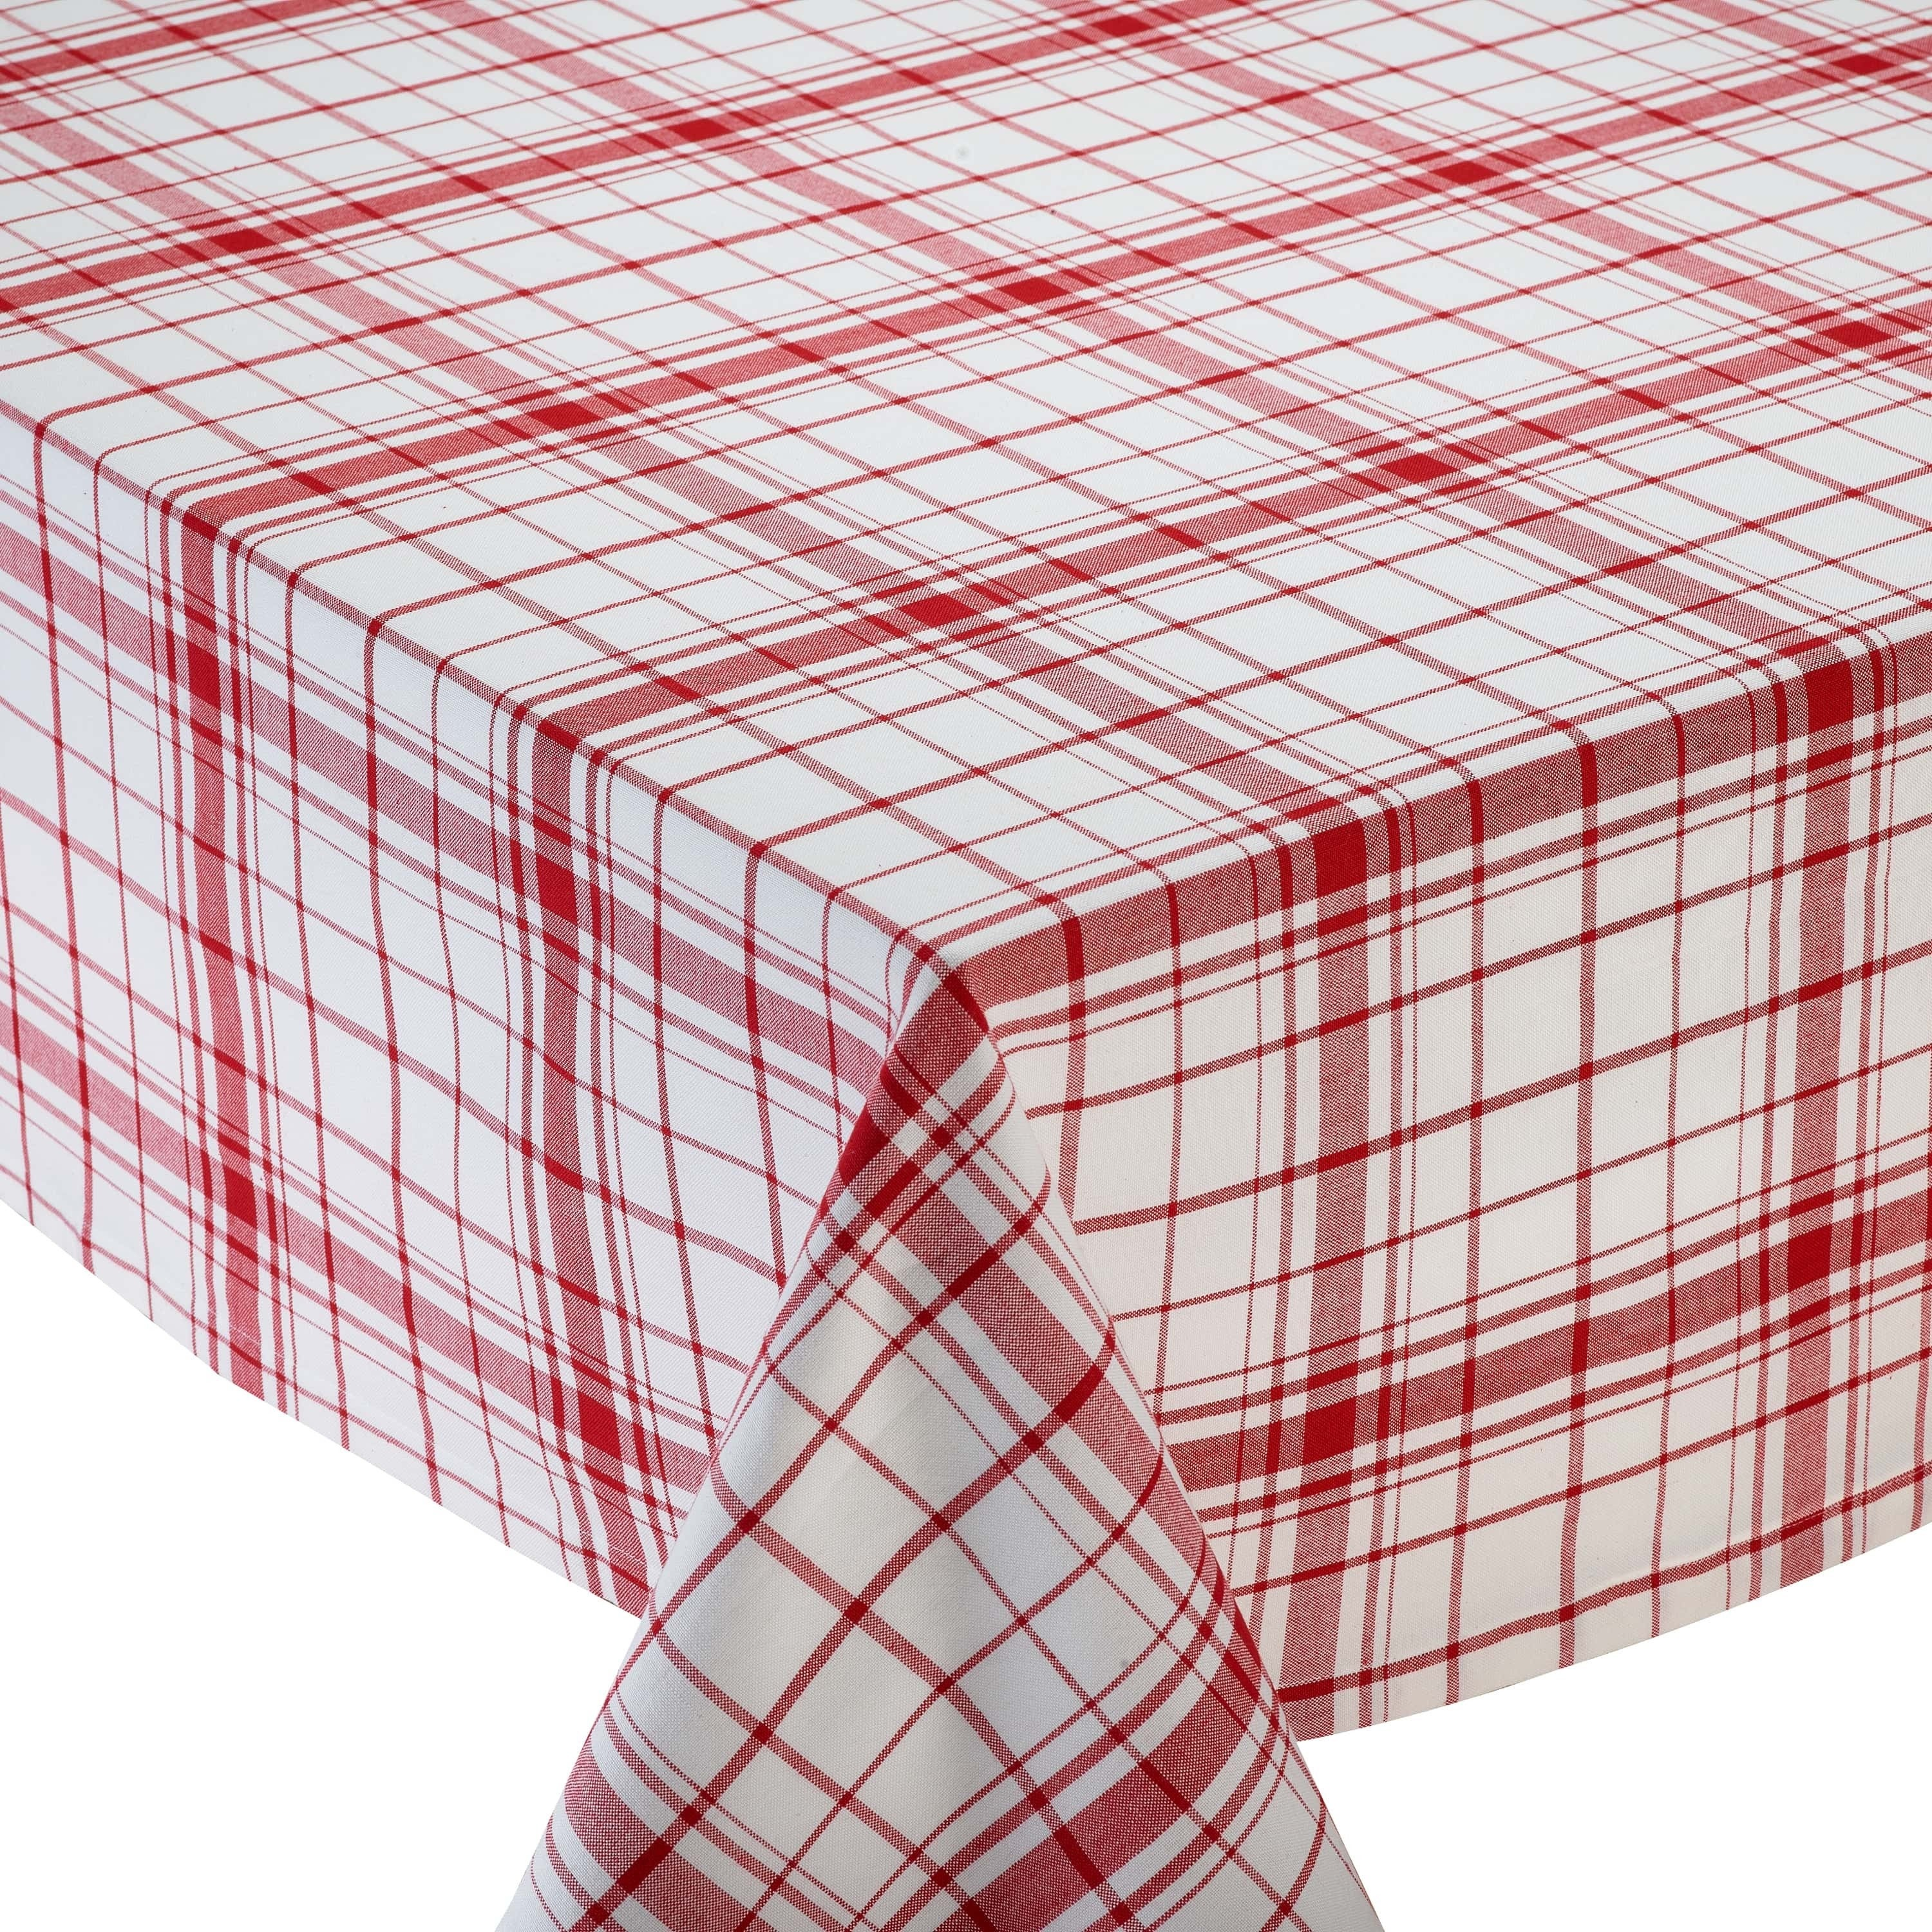 Merveilleux Shop Down Home Red/White Cotton Plaid Tablecloth   Free Shipping On Orders  Over $45   Overstock.com   14096741